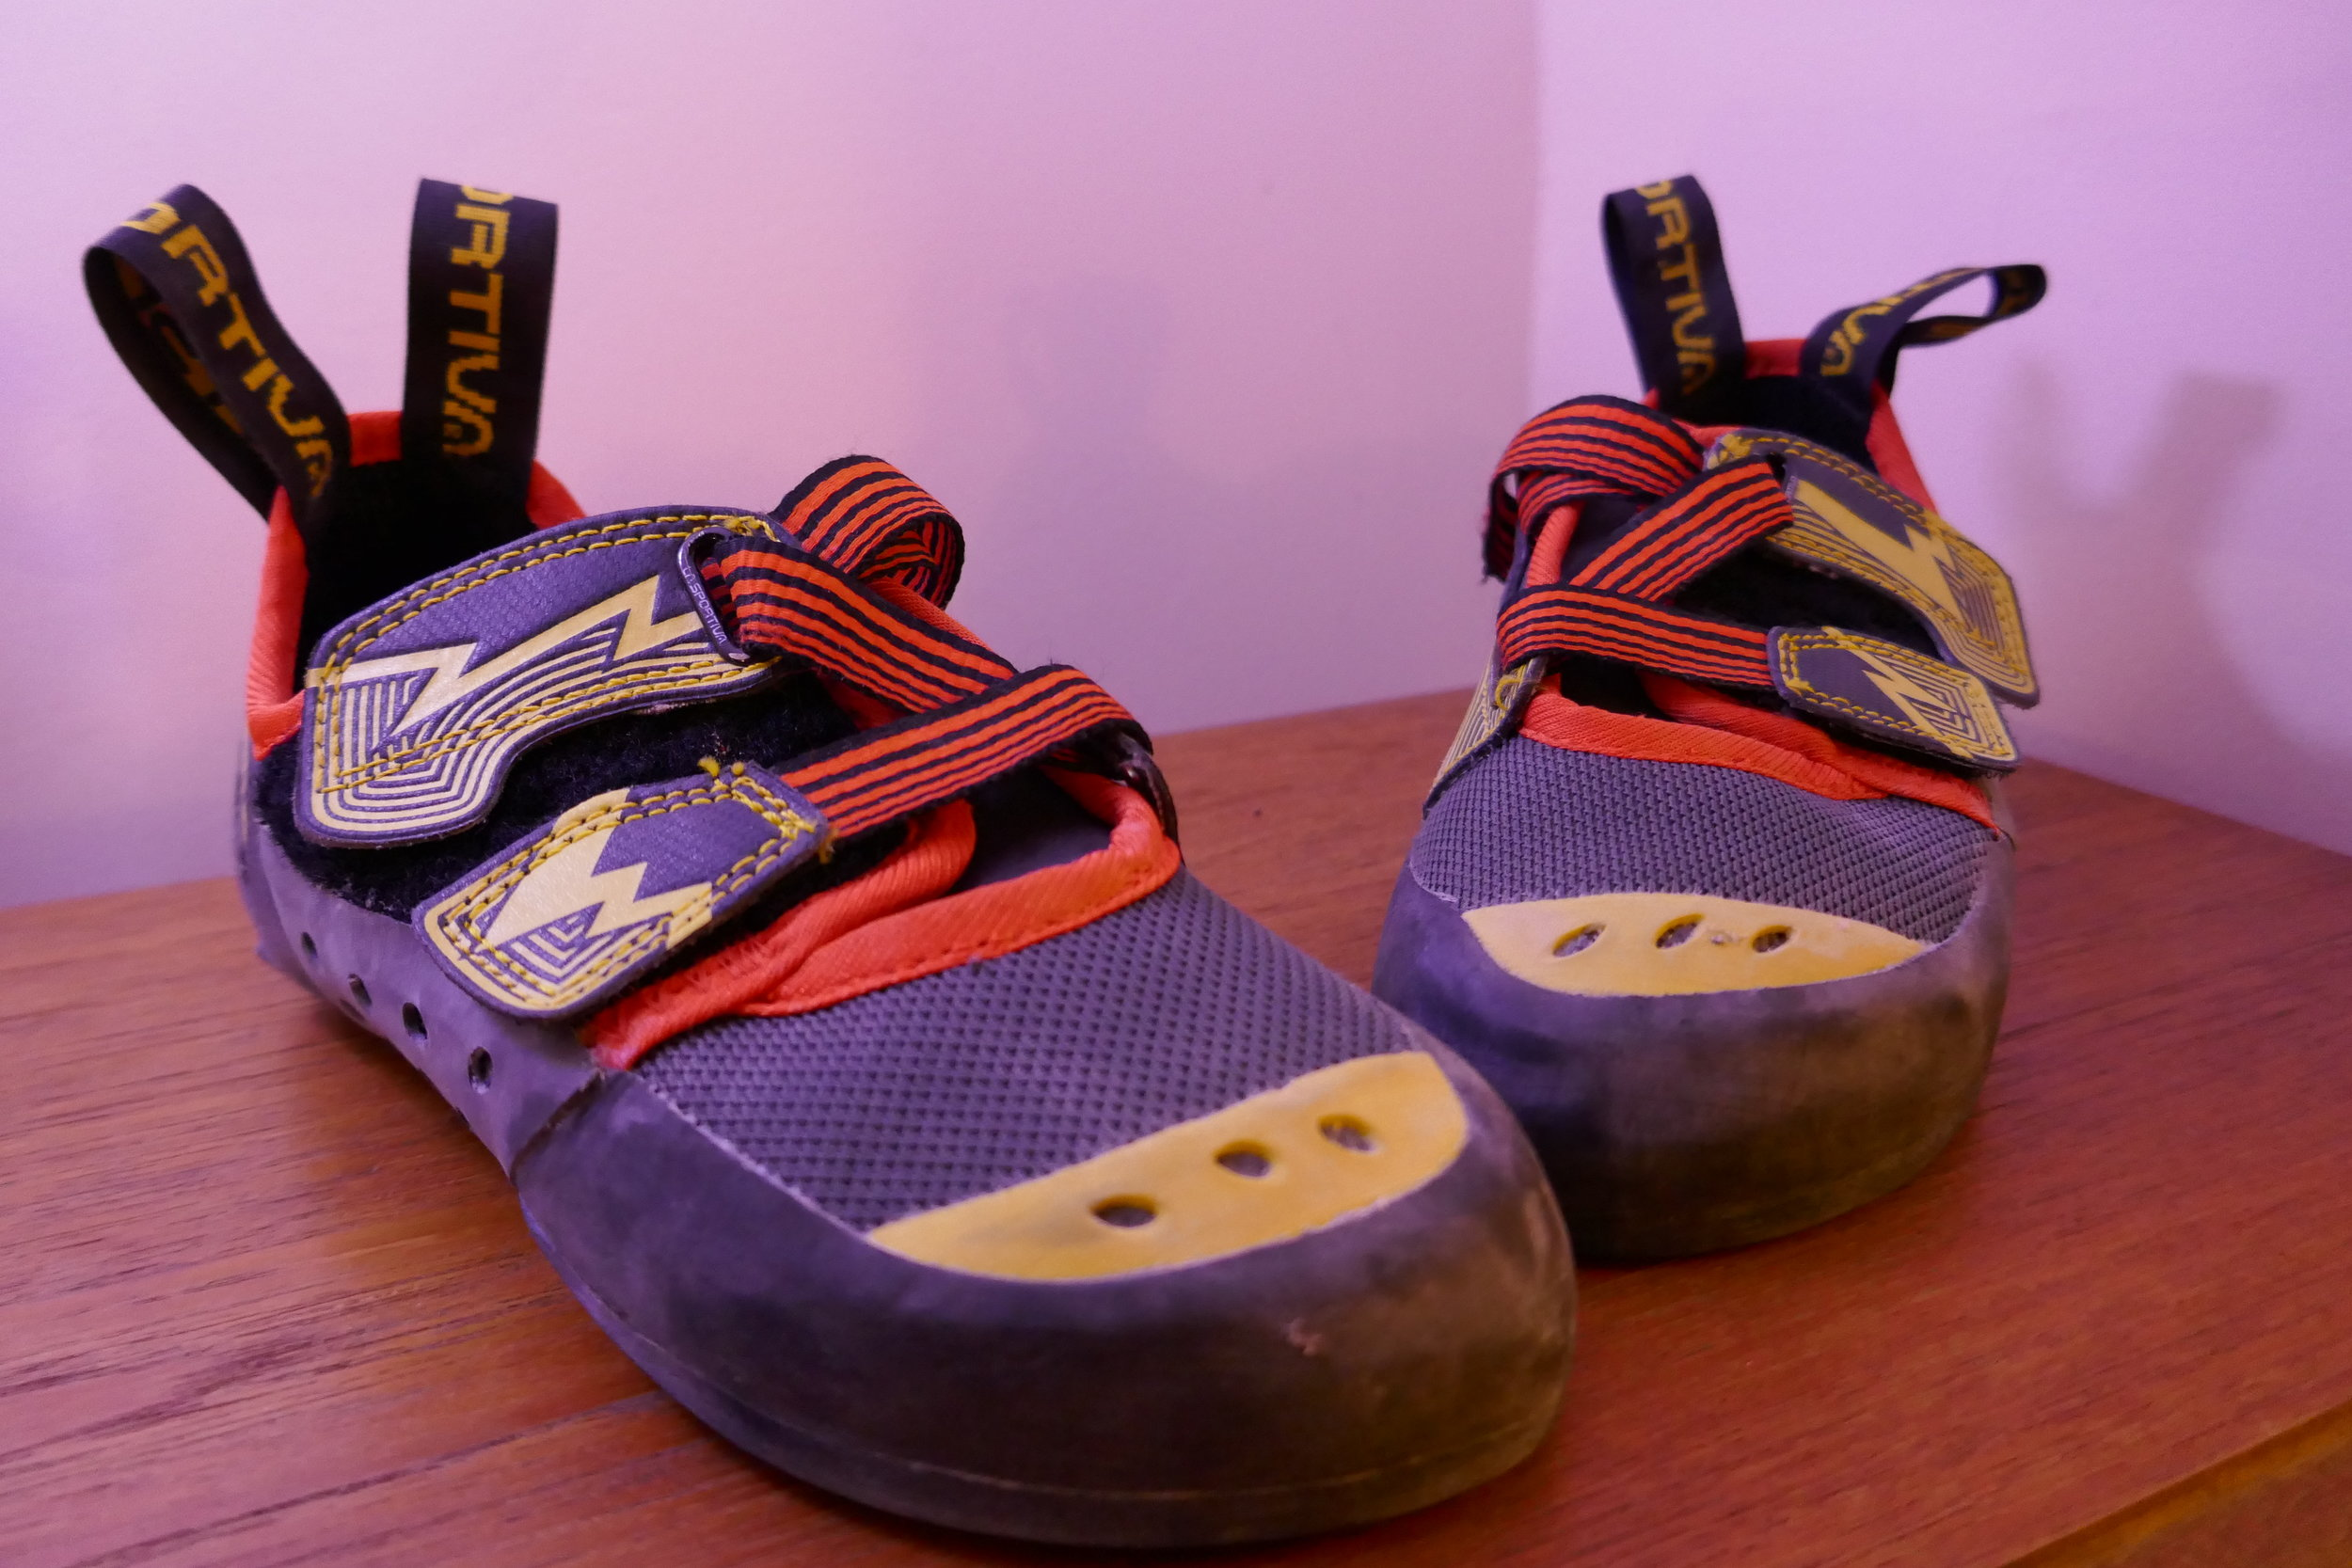 Gear Review   La Sportiva Oxygym climbing shoes